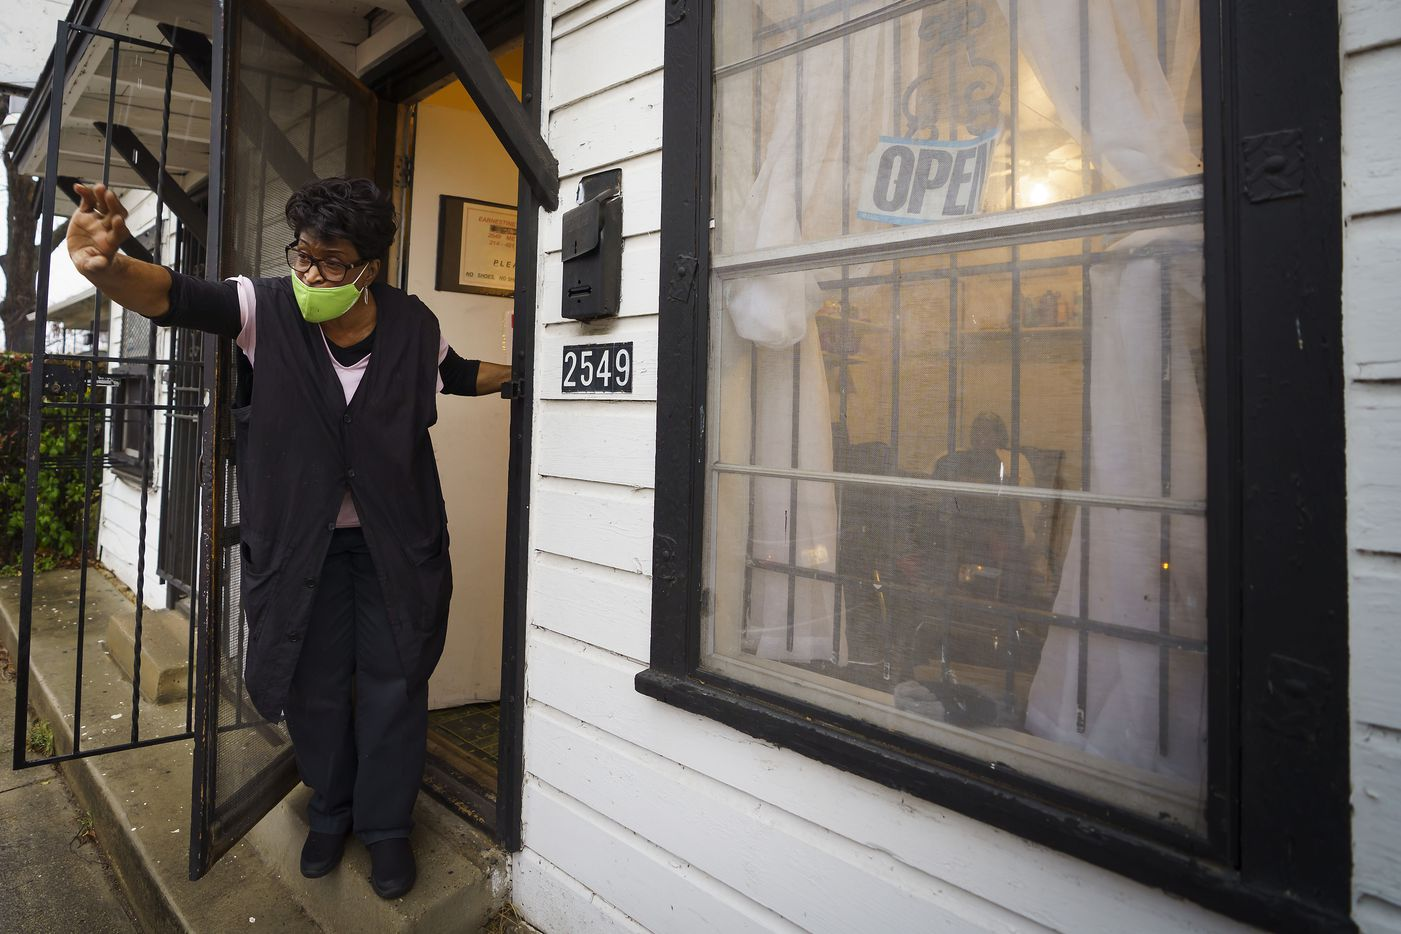 Earnestine Tarrant waves goodbye to a client at her hair salon in South Dallas. Tarrant opened her beauty salon in a tiny house on a corner in 1979. After four decades in business, she decided to close on New Year's Eve 2020.